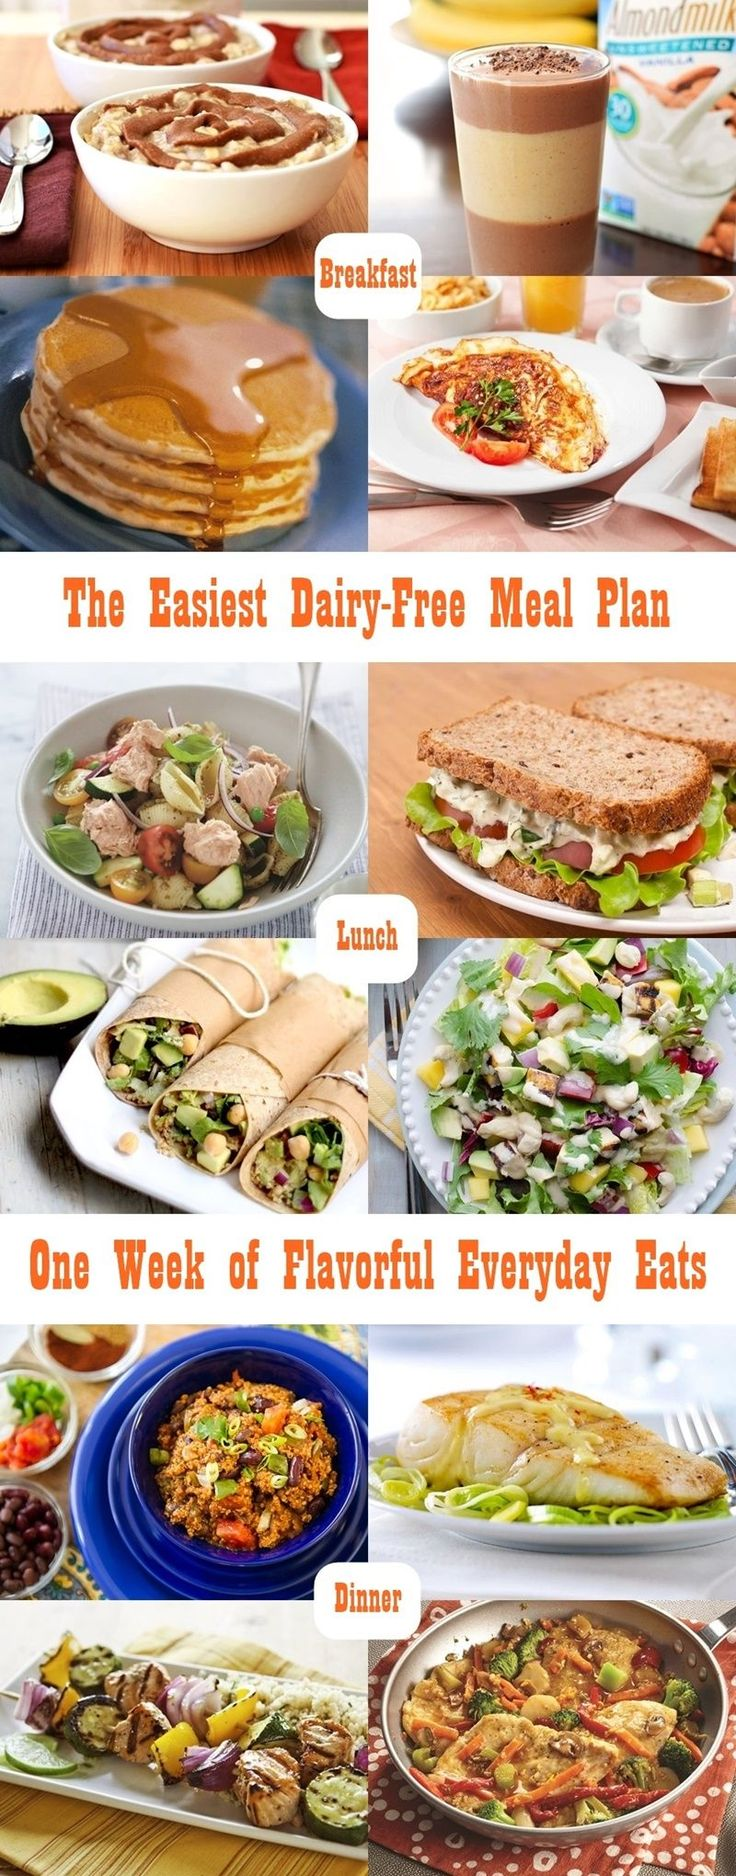 The Easiest Dairy-Free Meal Plan - A week-long menu of simple, naturally dairy-free eats for all! Gluten-free optional.